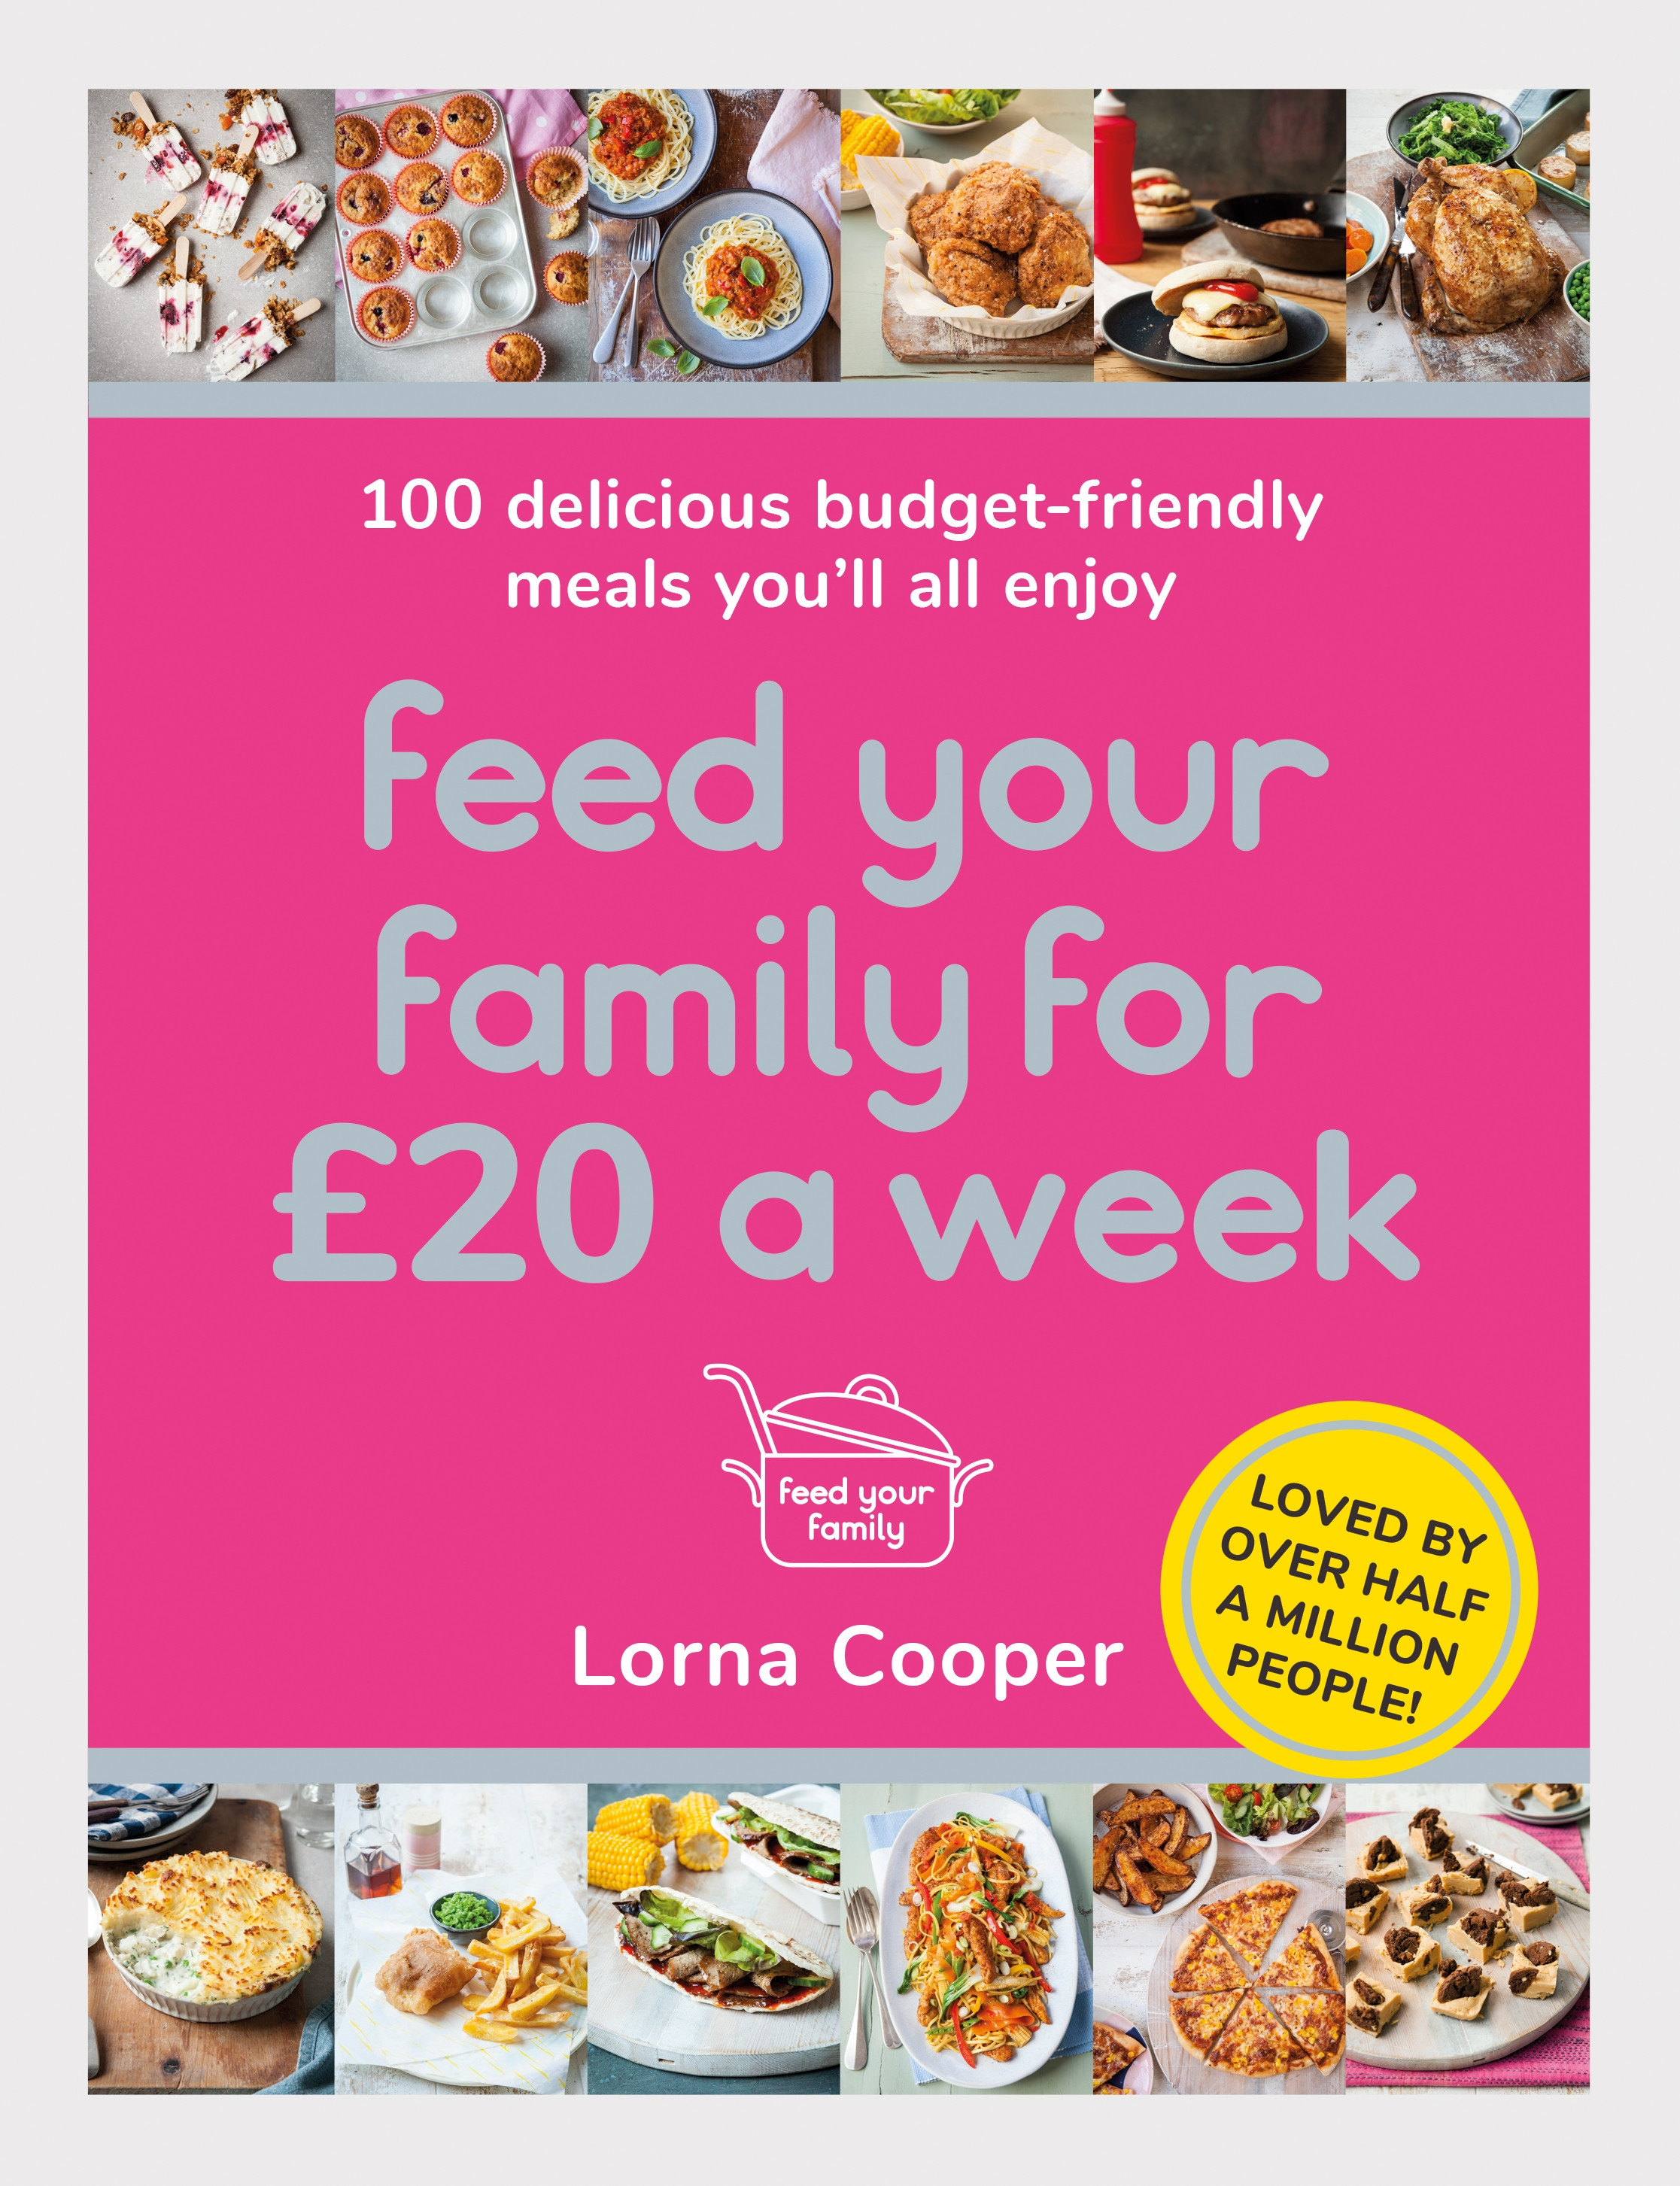 How to Feed Your Family For £20 A Week is an eight-week meal plan